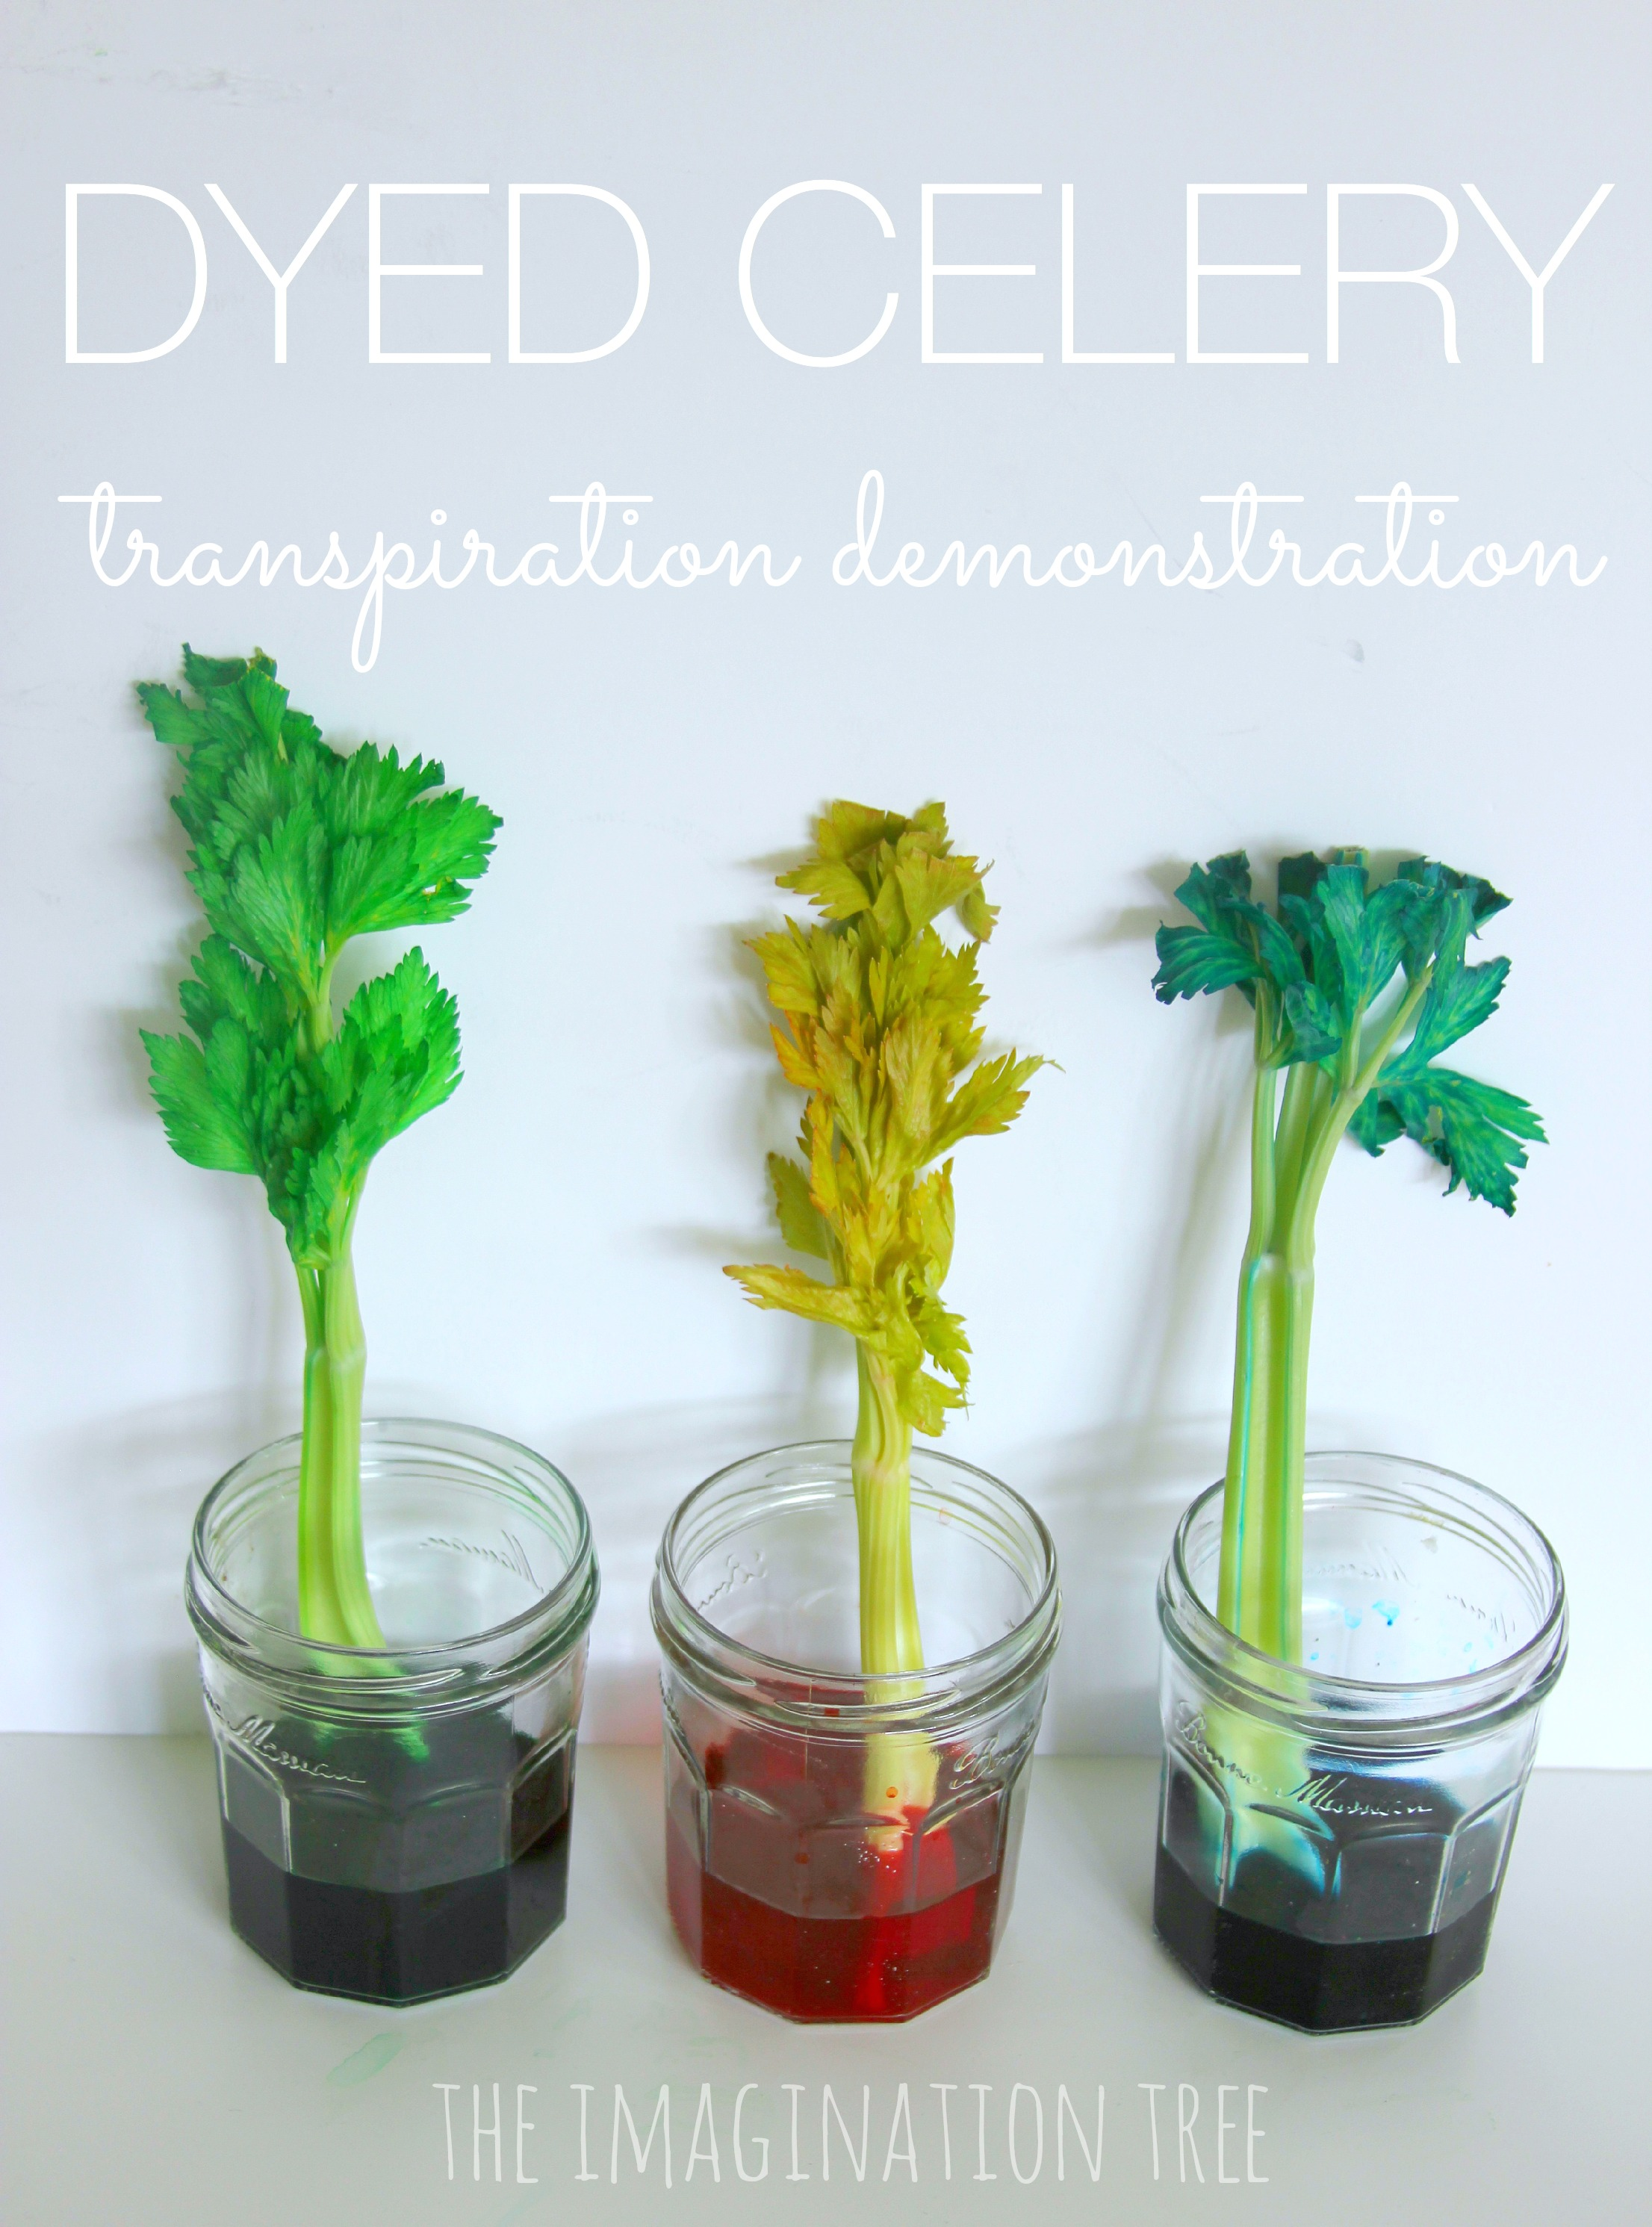 Dyed Celery Experiment Transpiration Demonstration